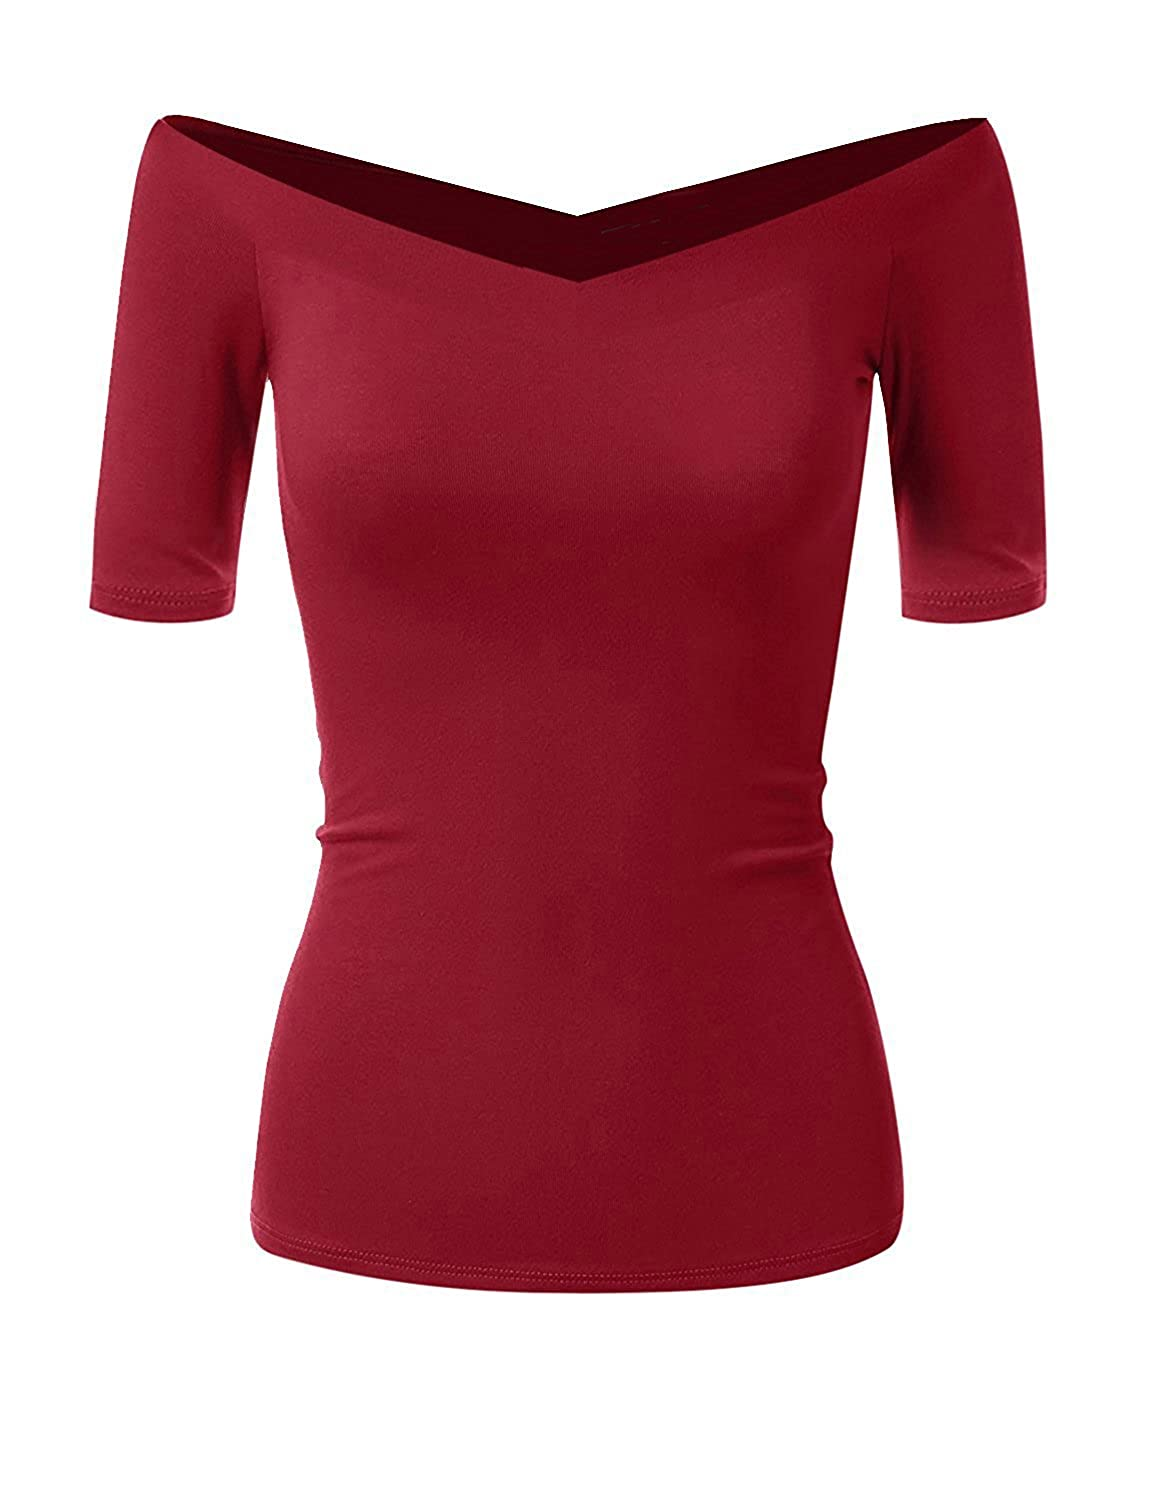 852cdd10 Off the shoulder fitted long sleeve crop top. Its cut from a stretchy &  lightweight fabric for a slim fit, super soft and comfortable, make you  sexy and ...